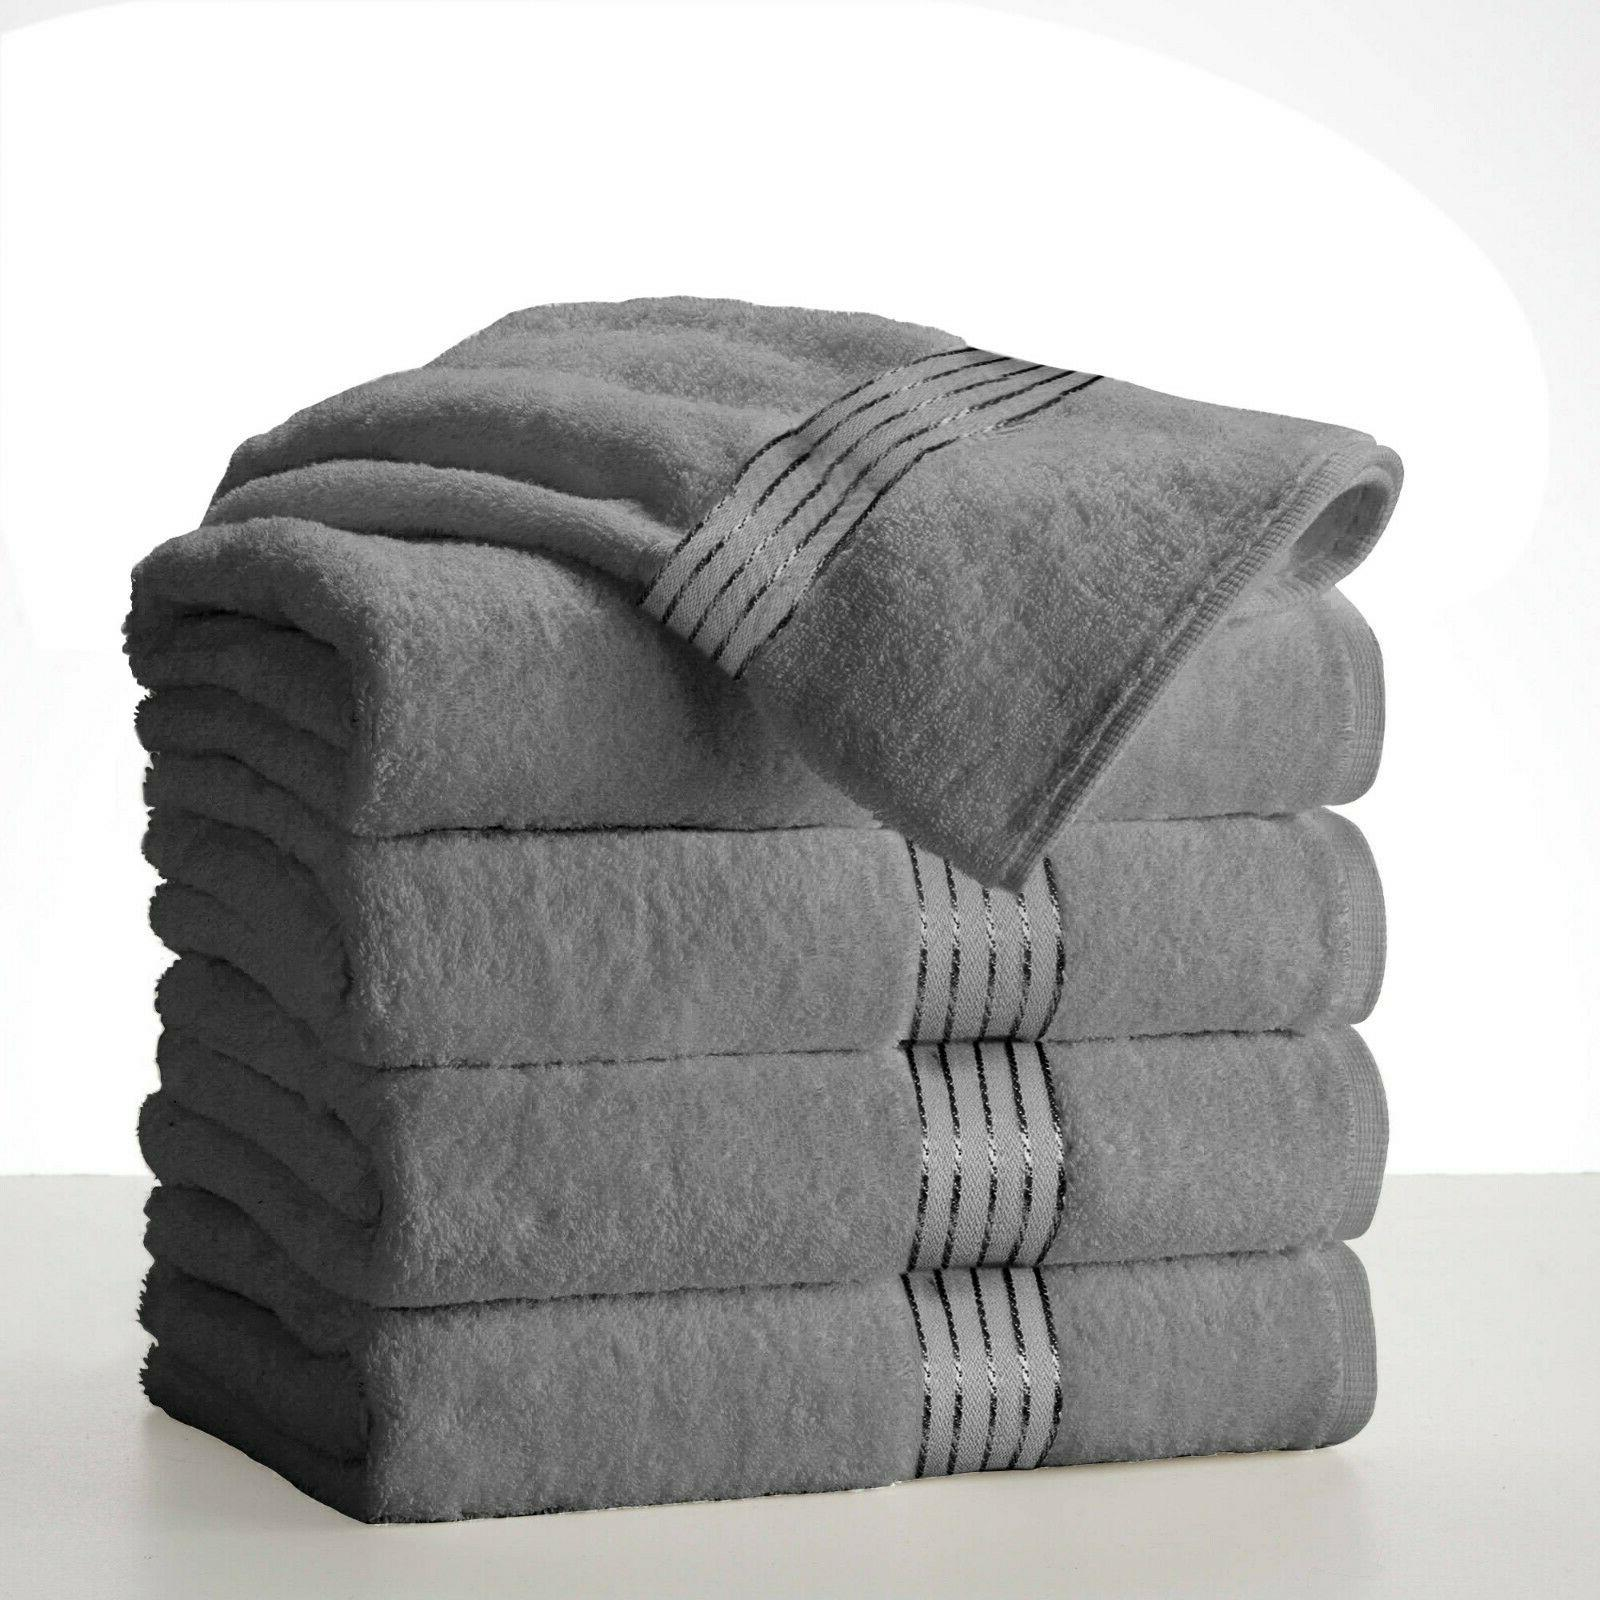 Luxury Silver Towels Cotton Soft Grey